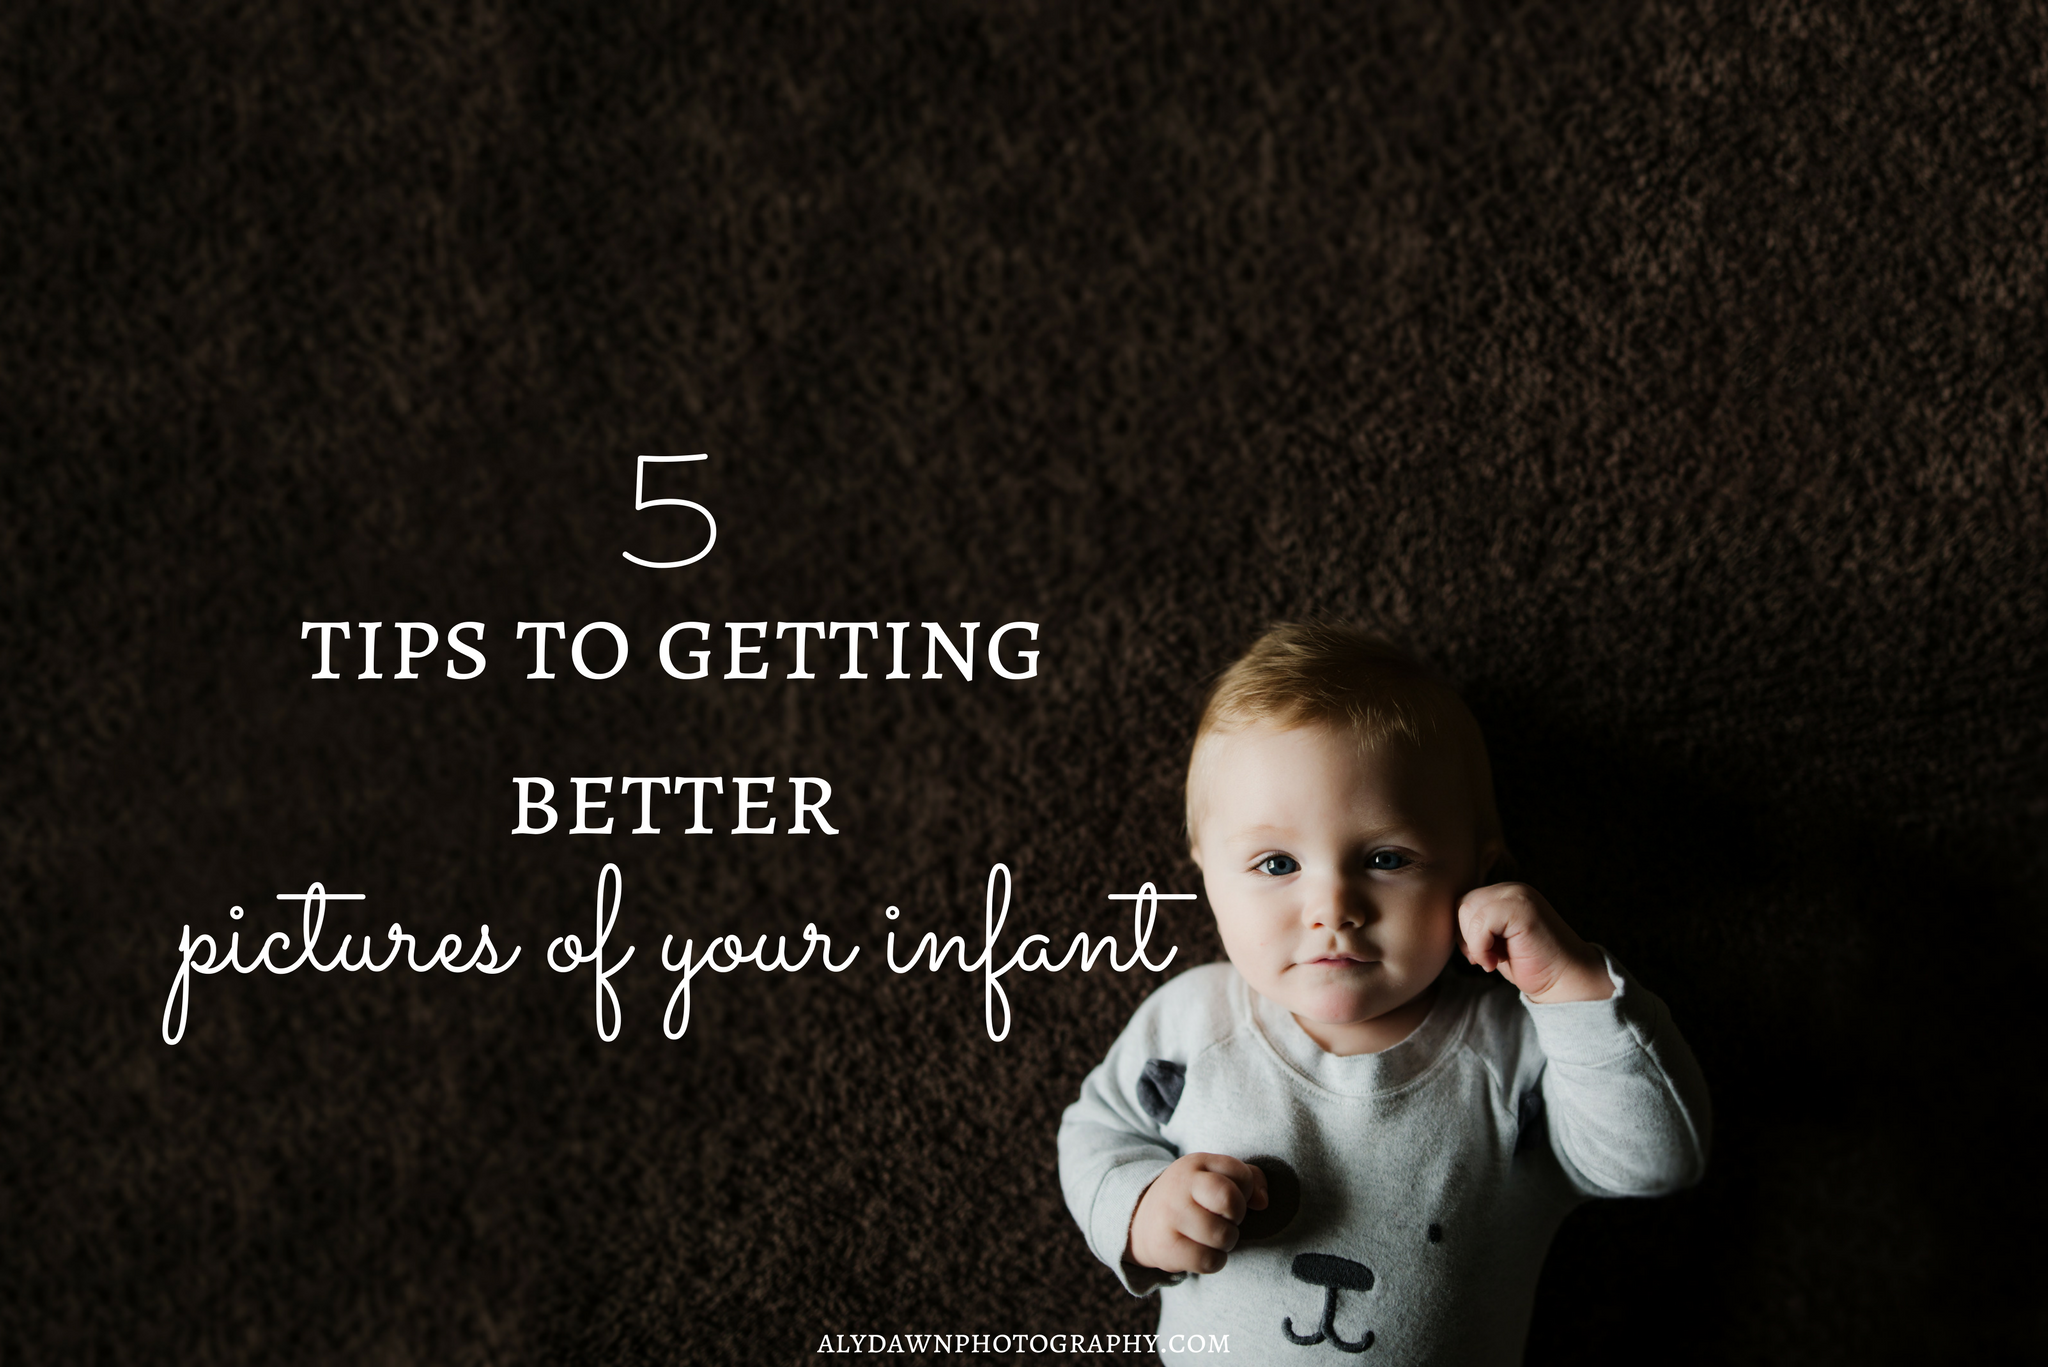 5 Tips to Getting Better Pictures of Your Infant